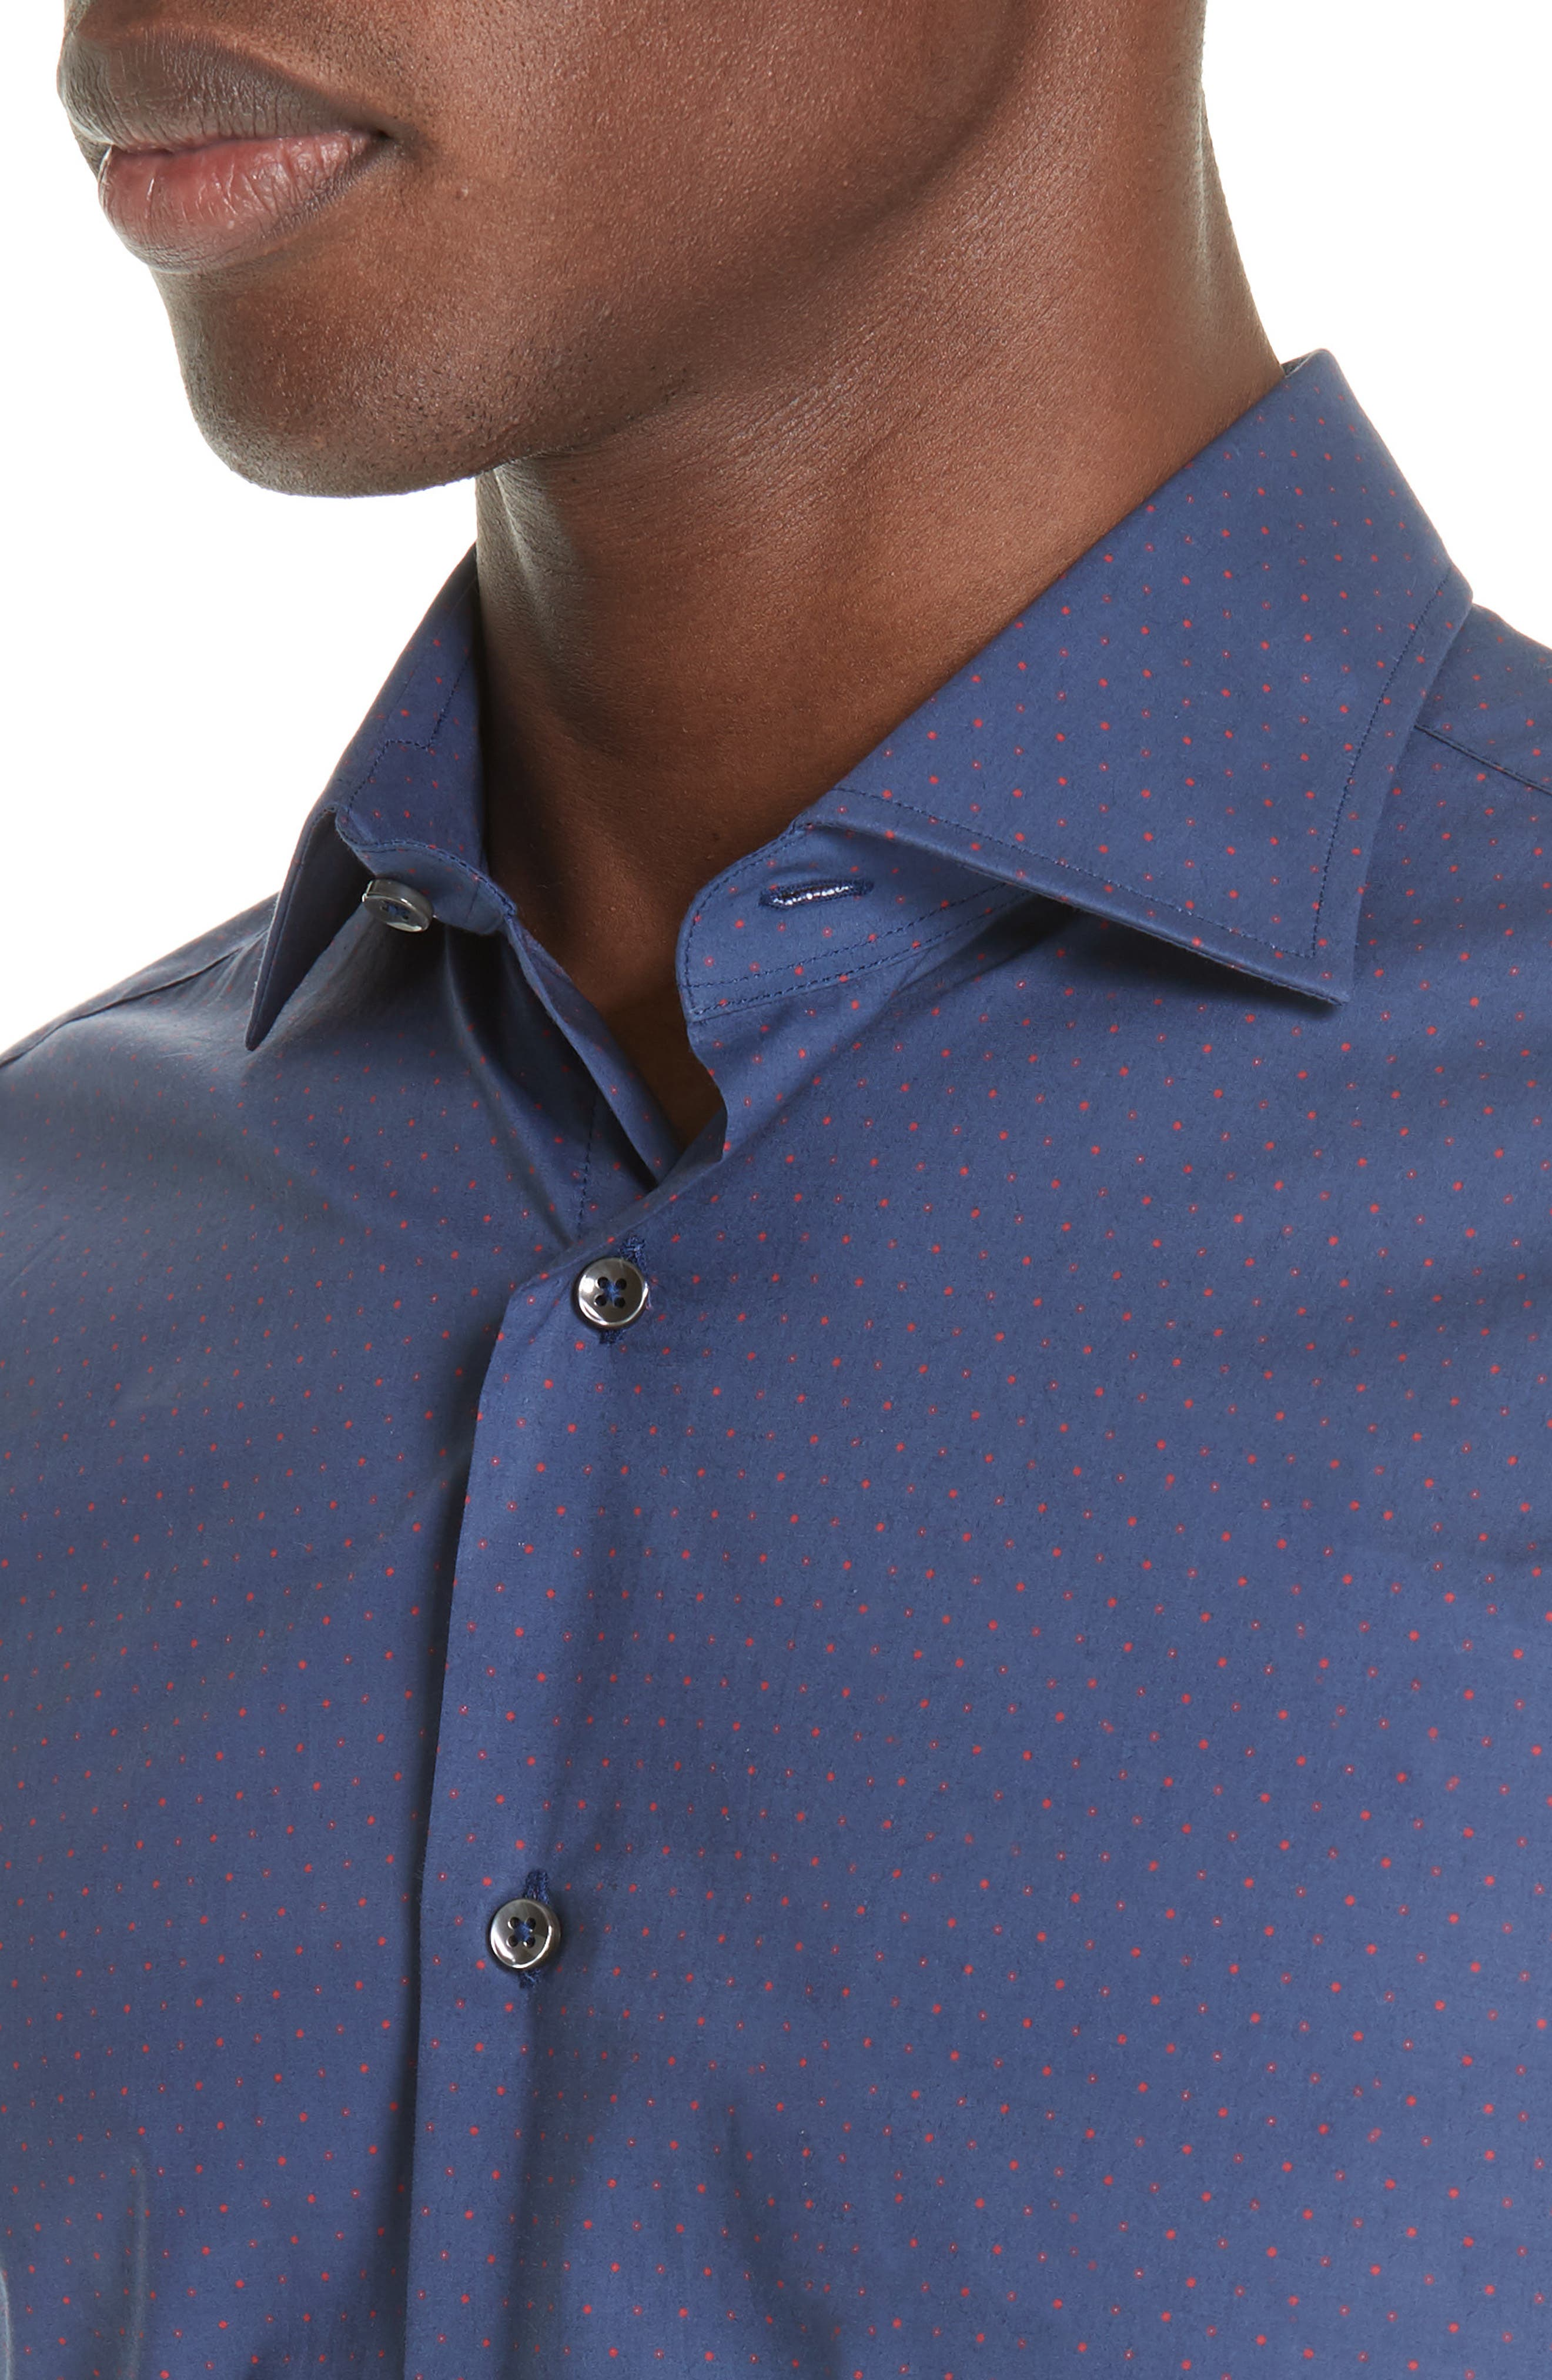 Regular Fit Dot Dress Shirt,                             Alternate thumbnail 2, color,                             DARK BLUE